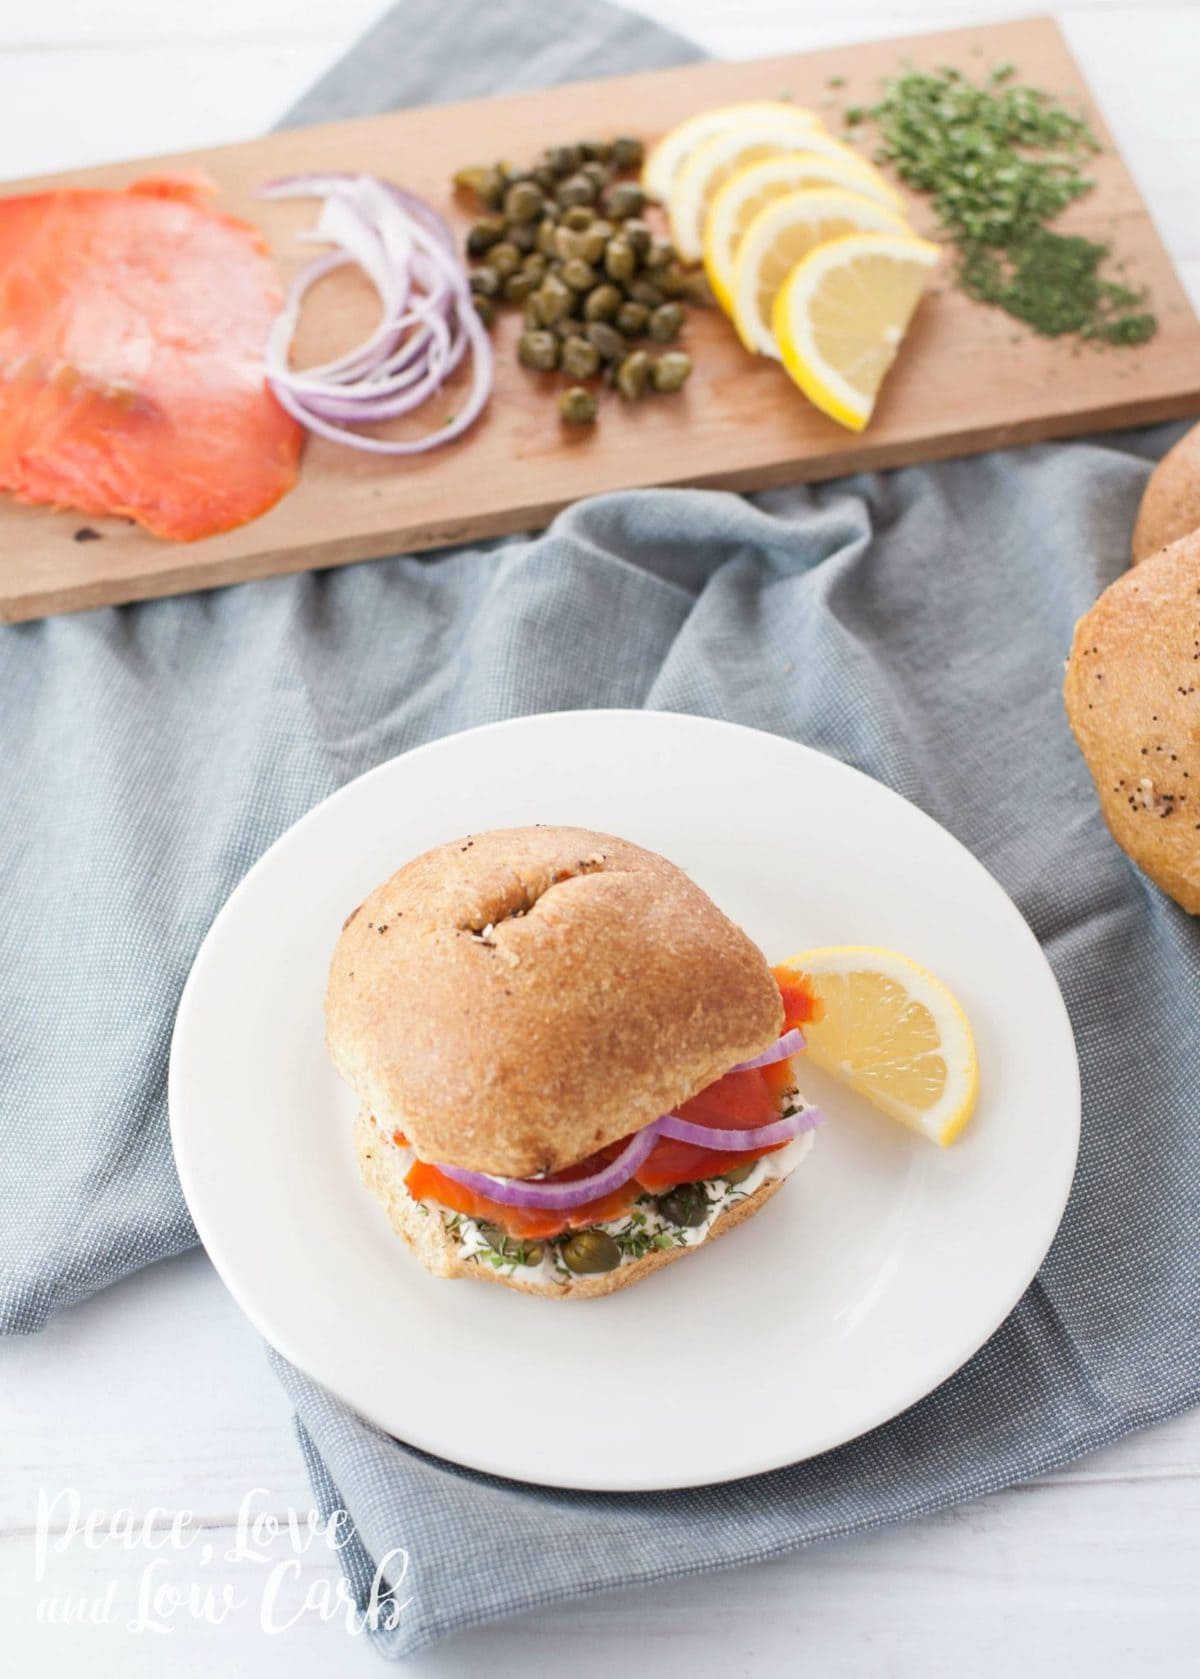 Low Carb Everything Bagel with Smoked Salmon and Cream Cheese | Peace Love and Low Carb